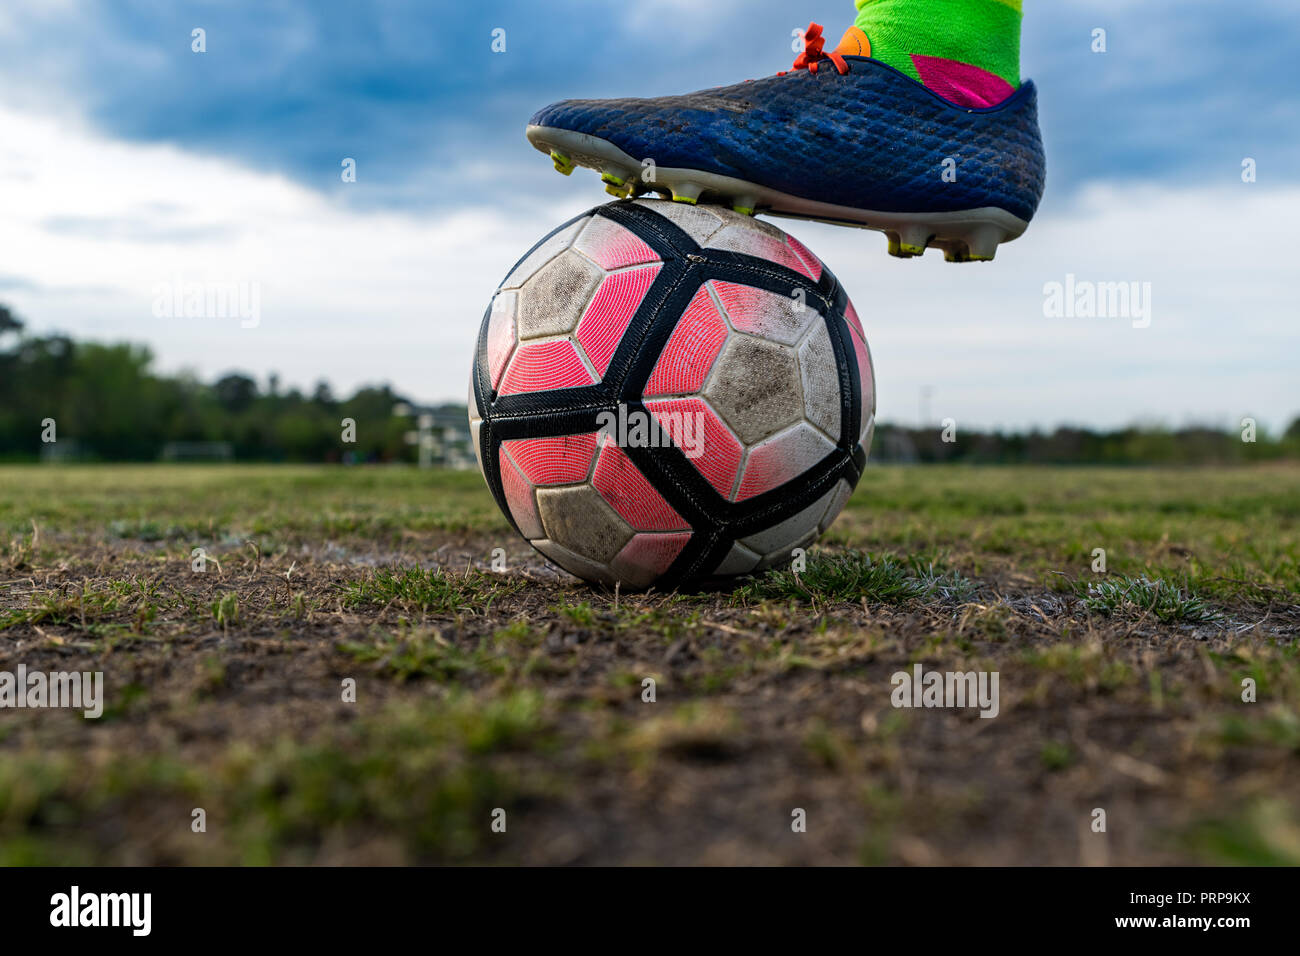 A young athlete puts their cleated food on a soccer ball.  Concepts: youth sports, athlete, focus, preparation, practice, intensity, aspiration, dream - Stock Image